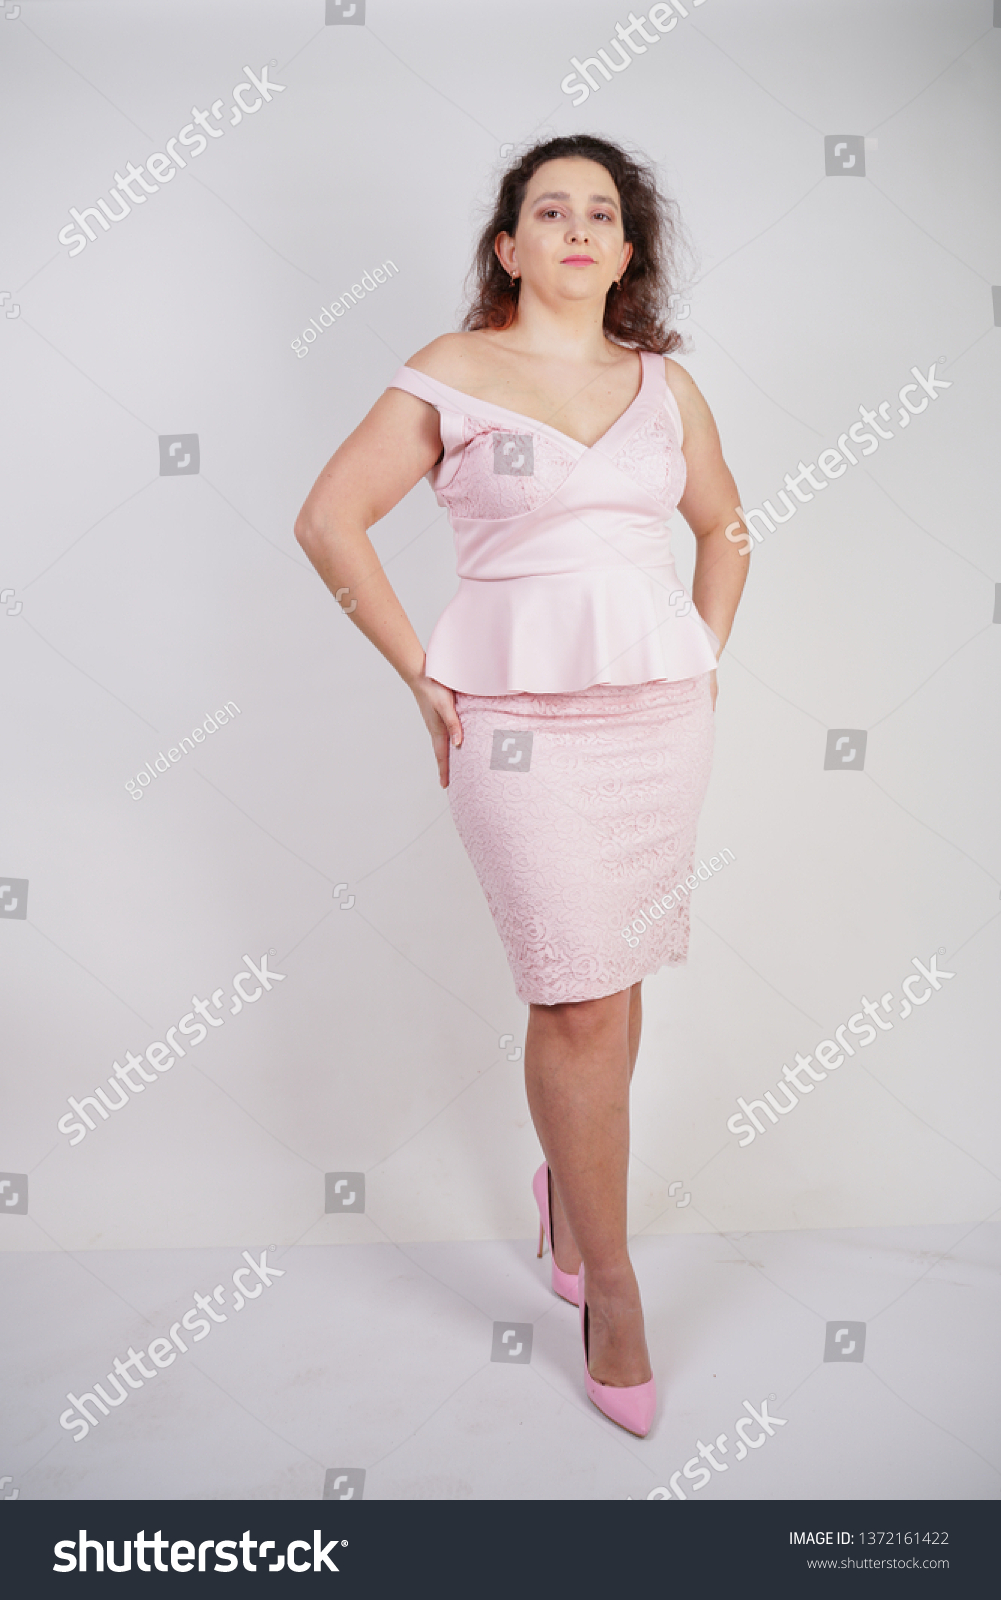 Trendy Plump Positive Woman Plus Size Stock Image | Download Now